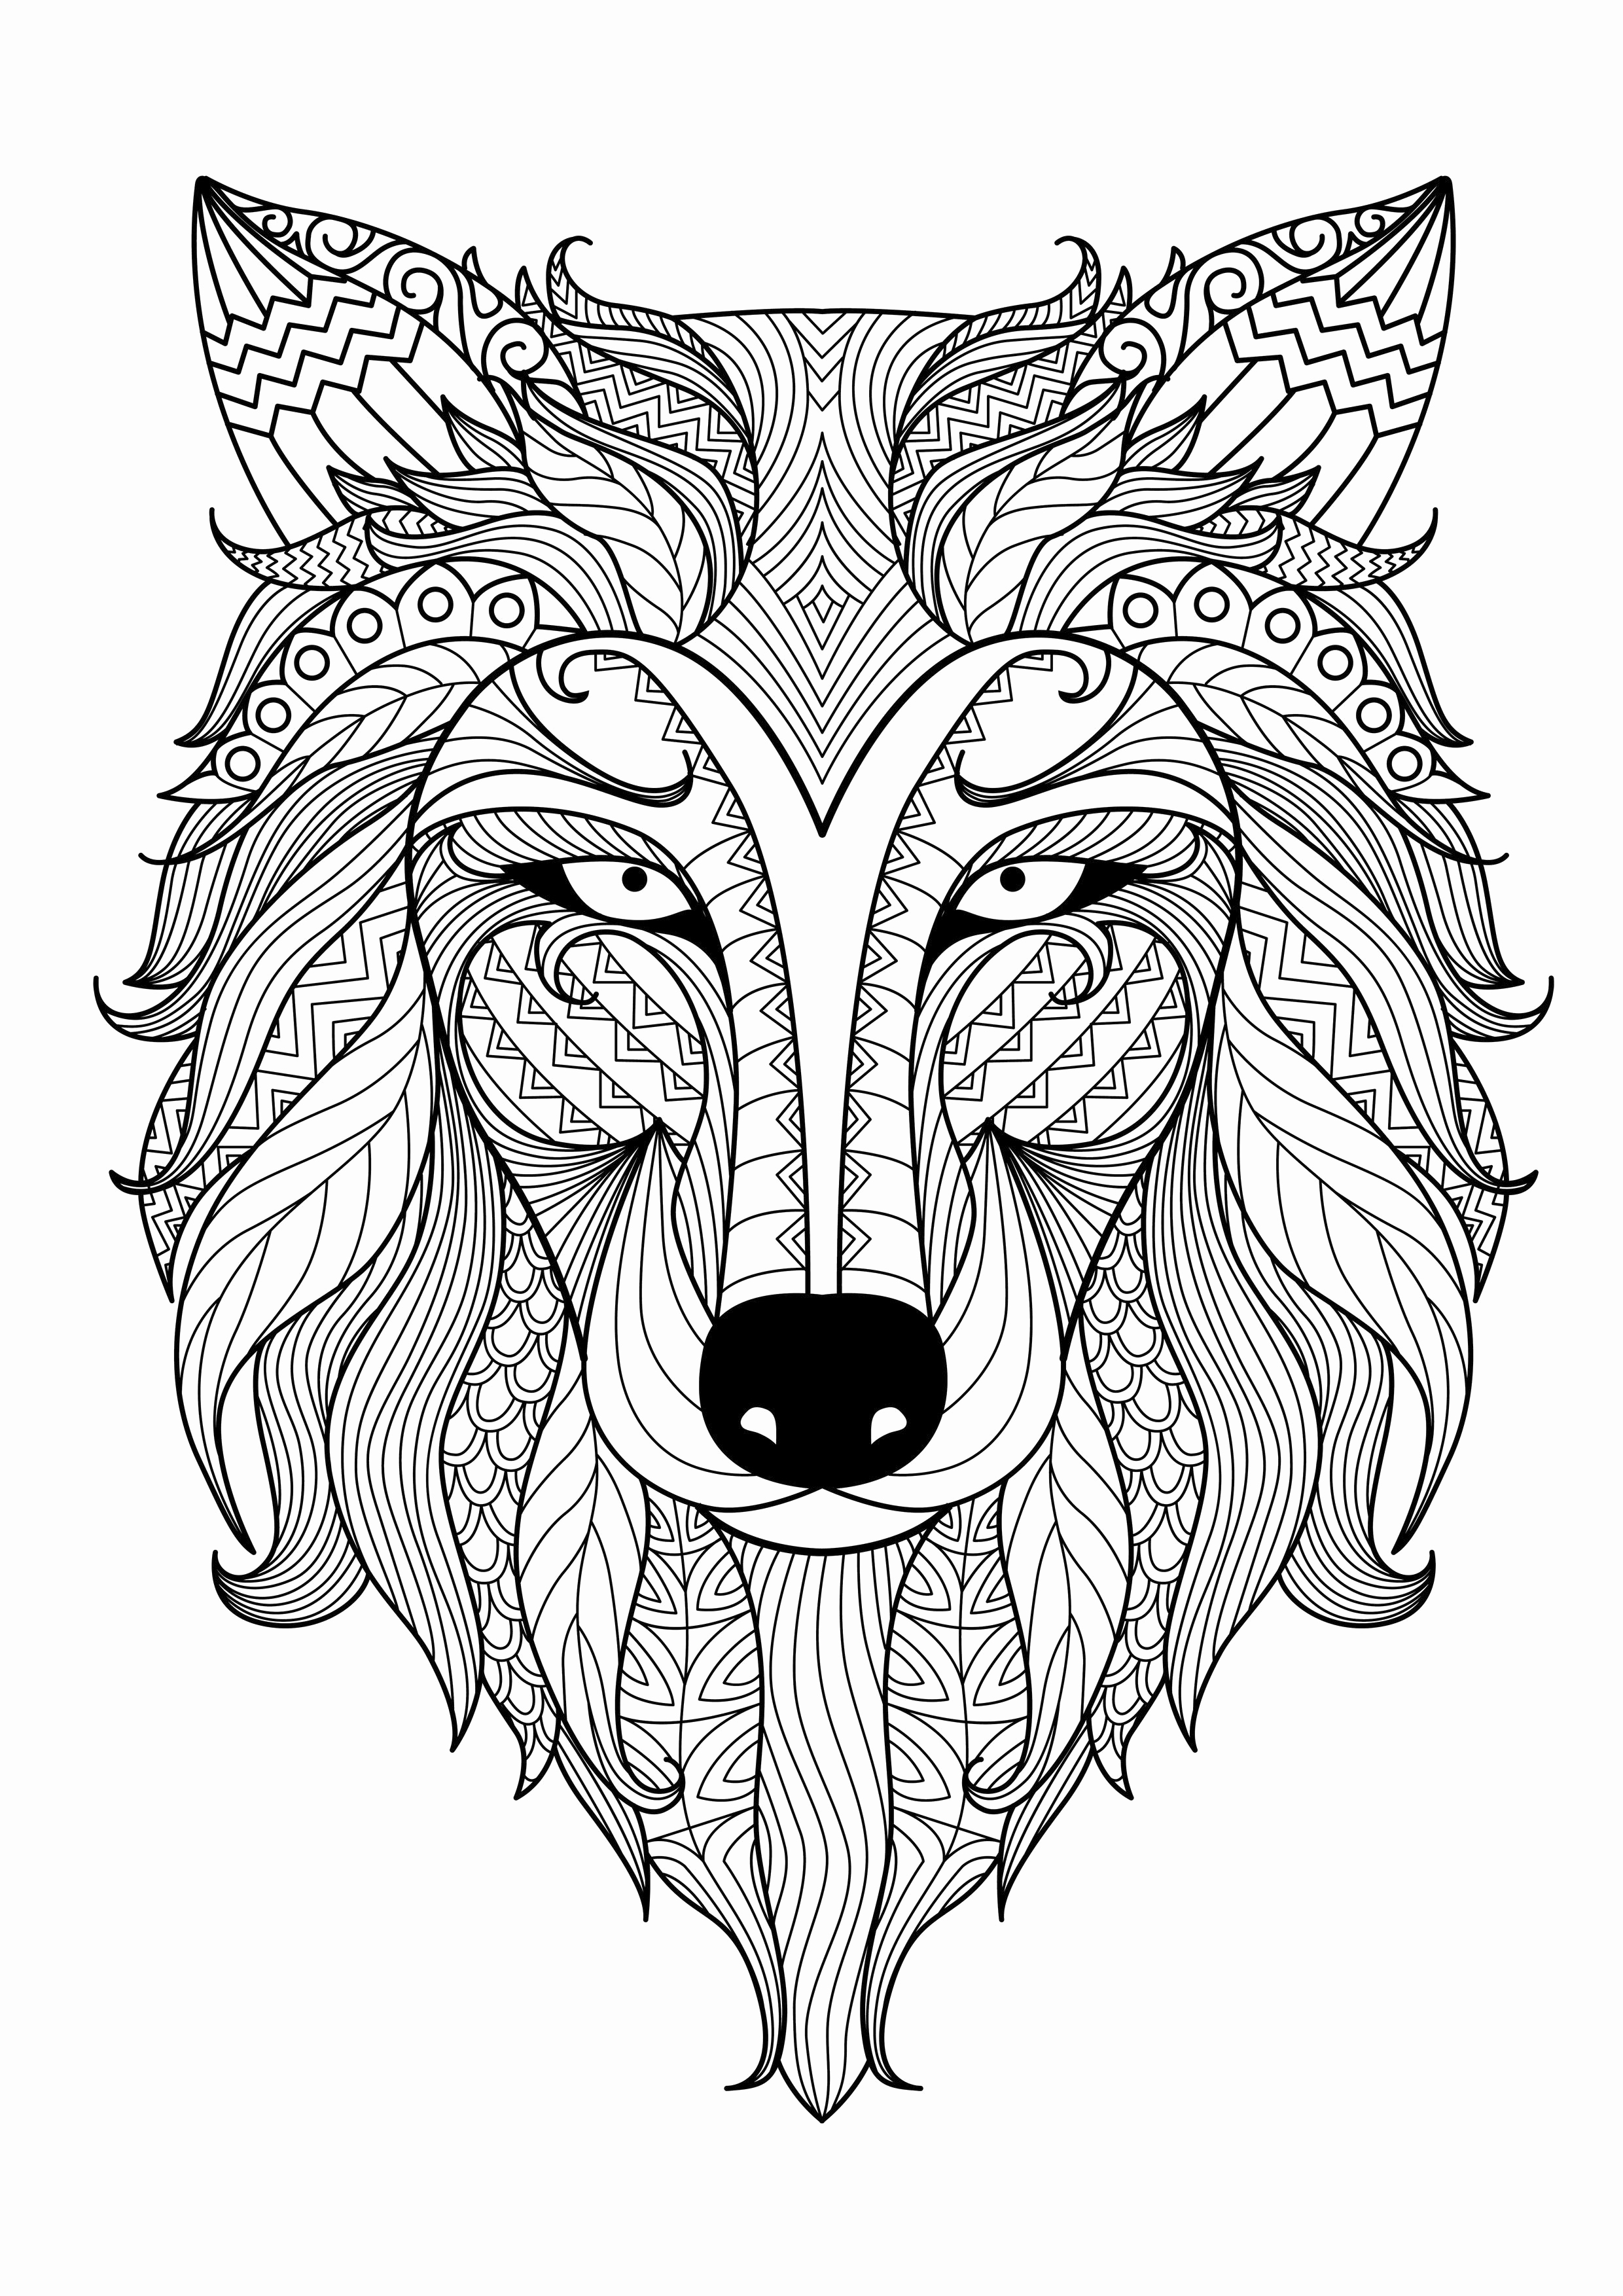 2480x3508 Free Printable Lion King Coloring Pages Printable Coloring Page